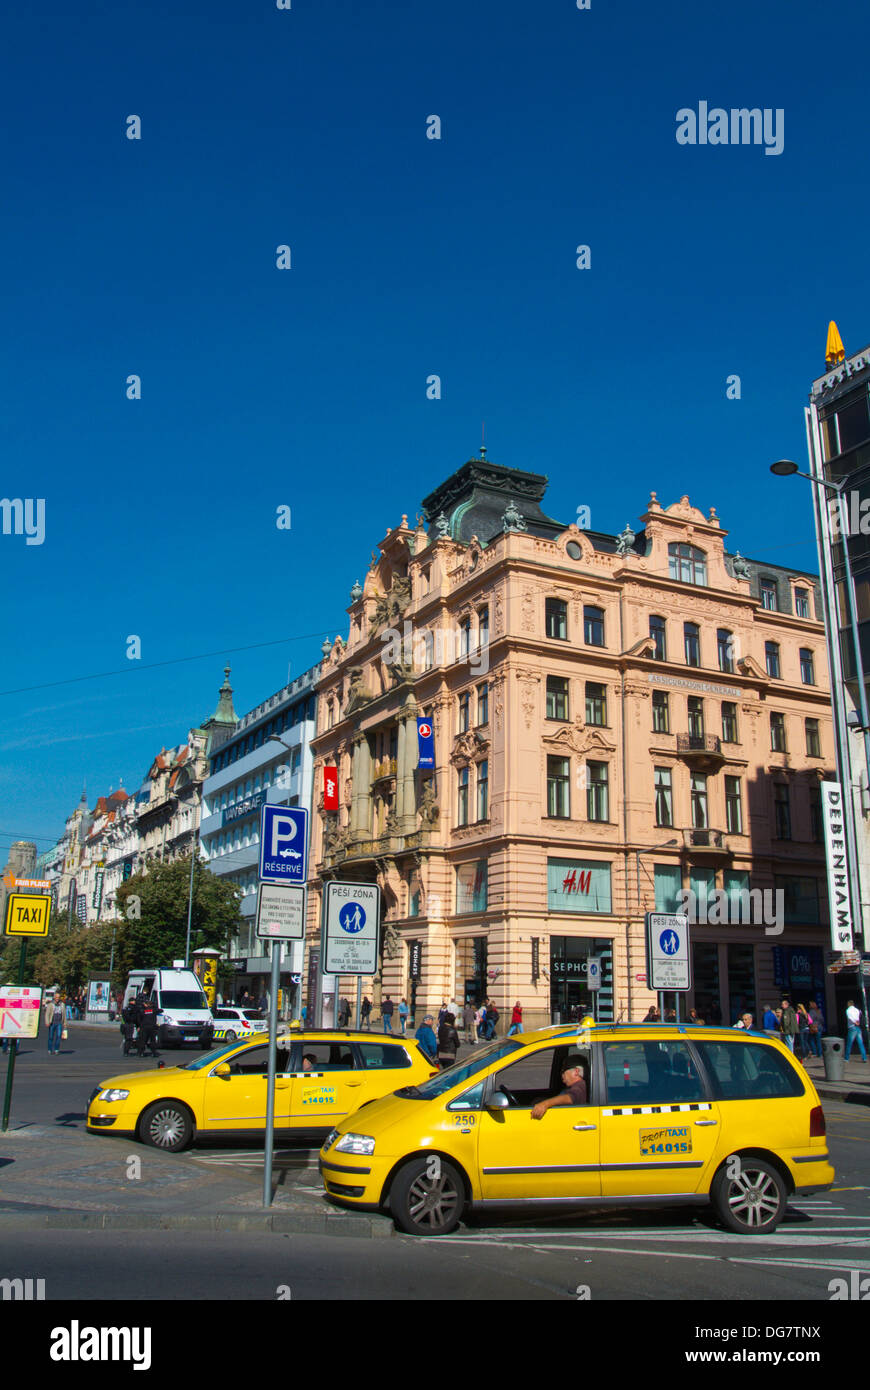 Fair place taxi stand with AAA company cars Vaclavske namesti the Wenceslas square central Prague Czech Republic Stock Photo